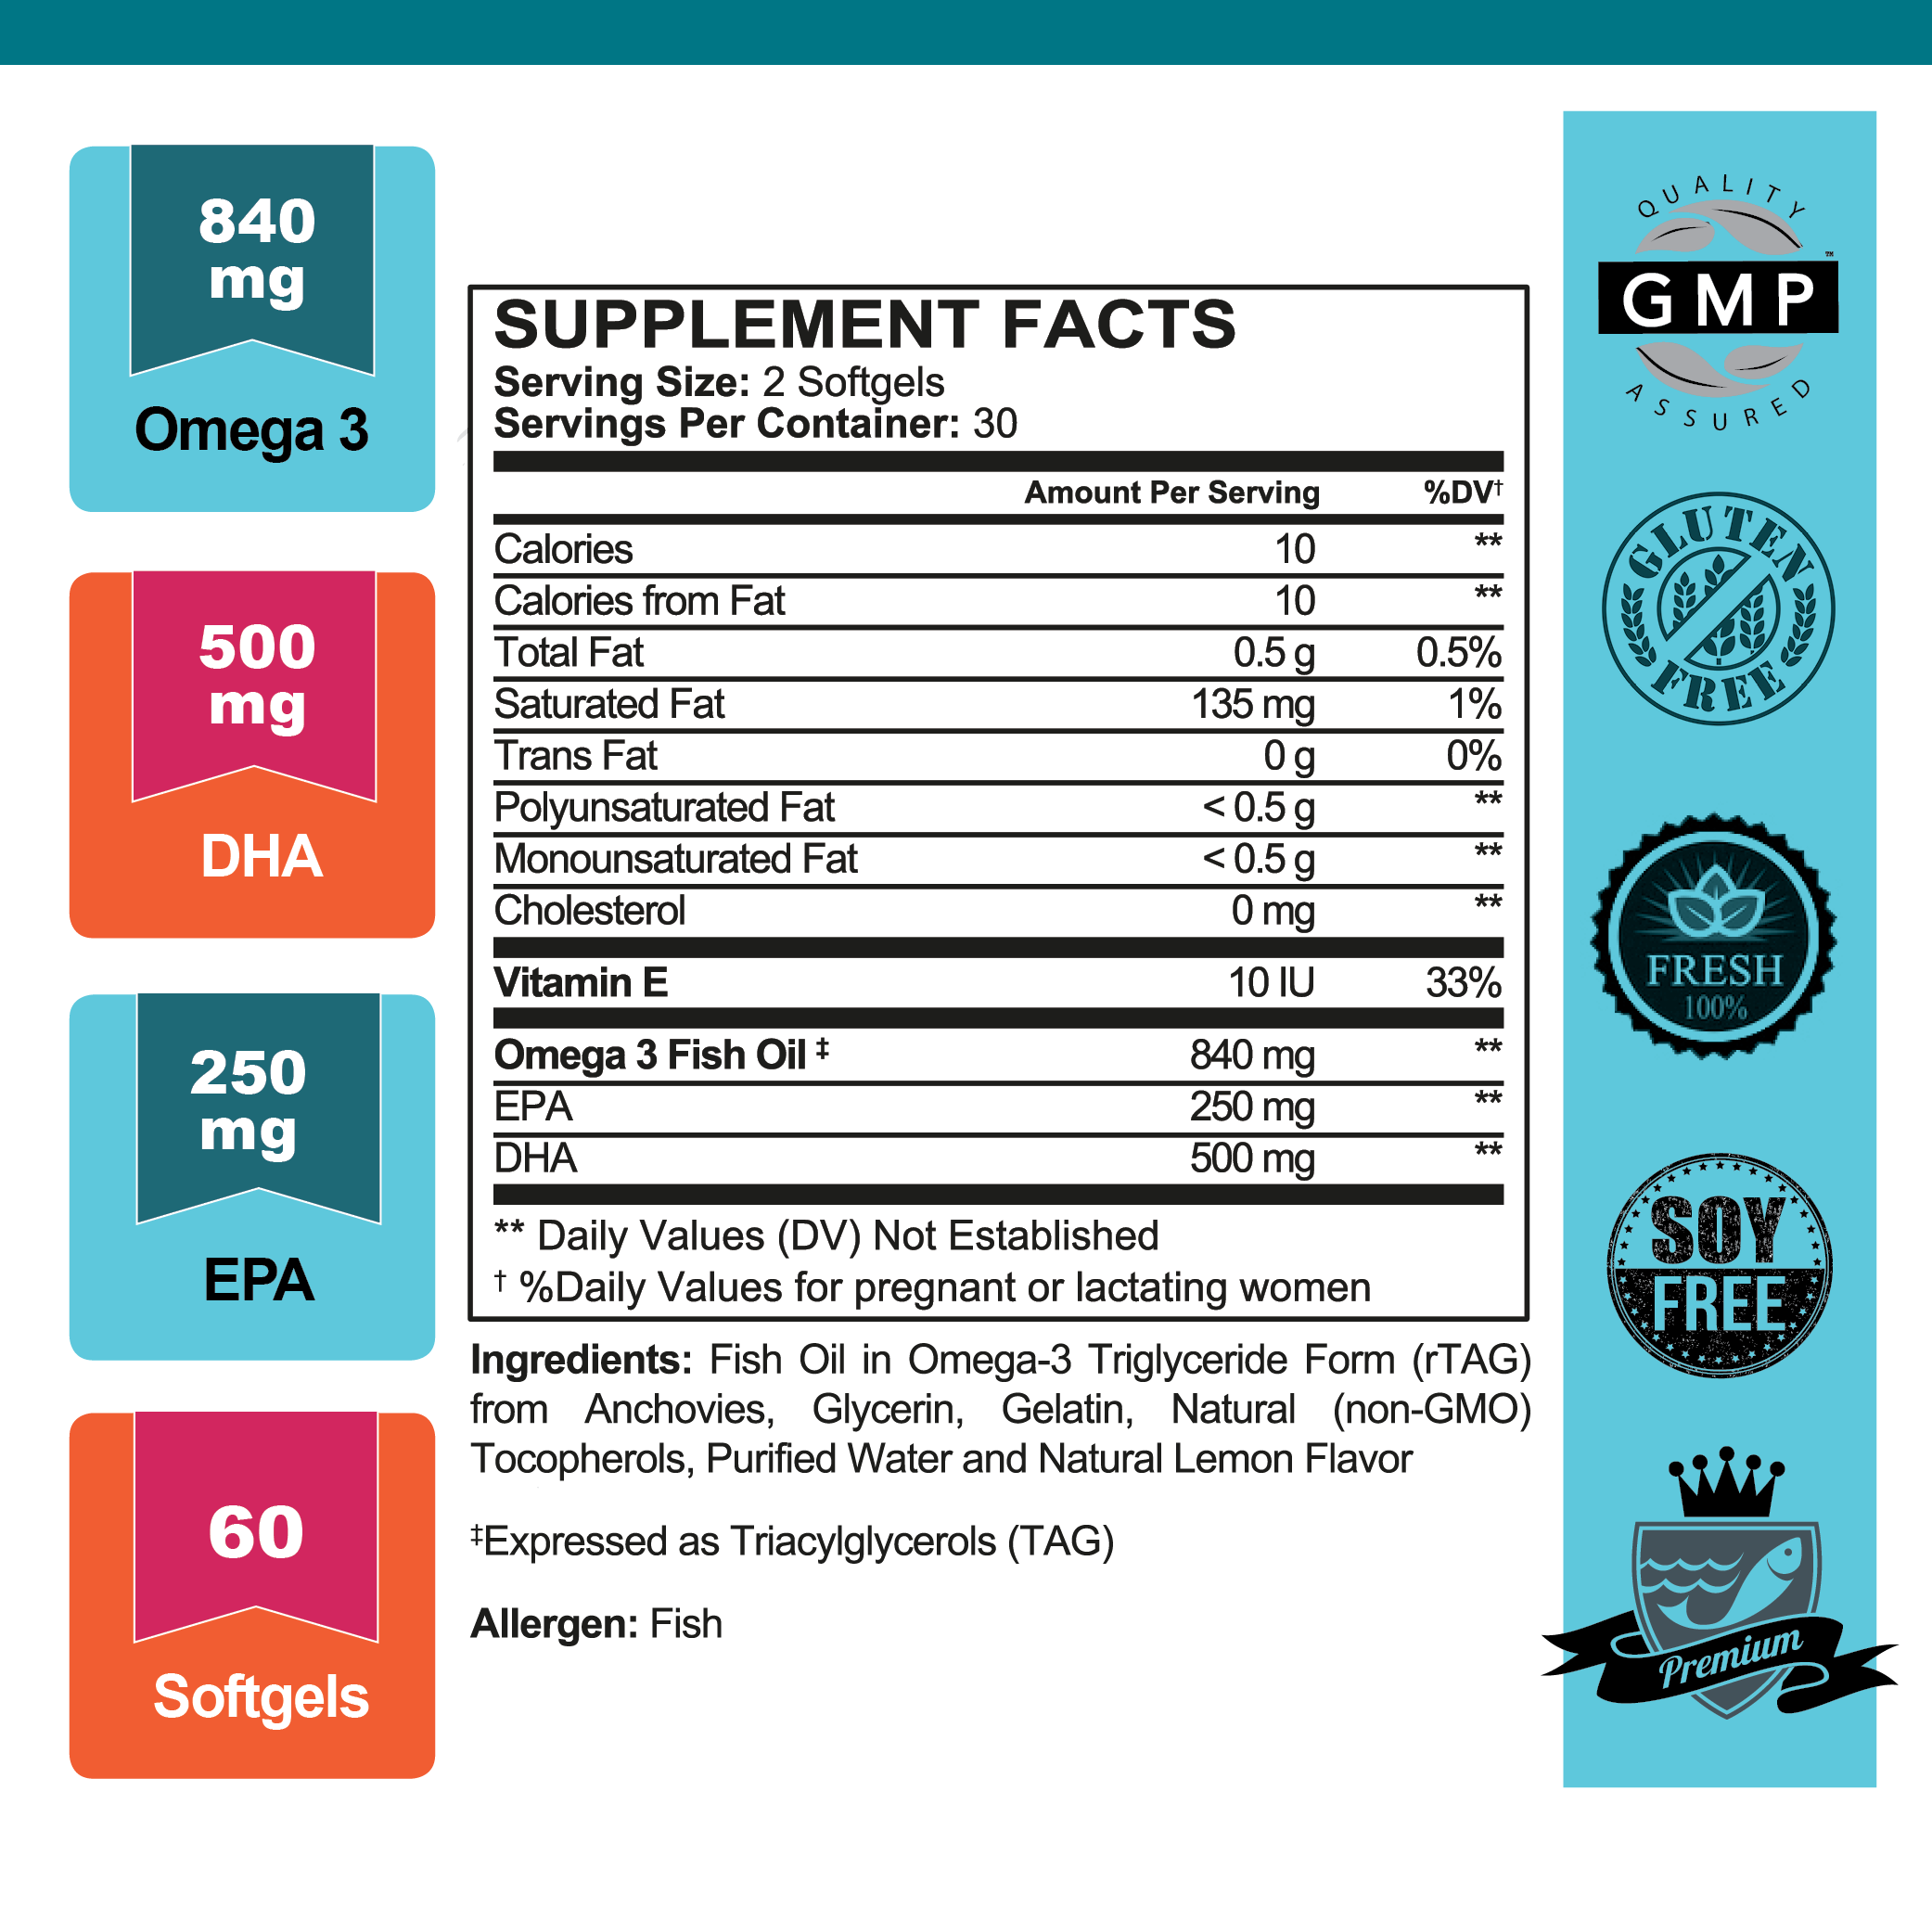 One Fish Two Fish™ Prenatal DHA Supplement Facts